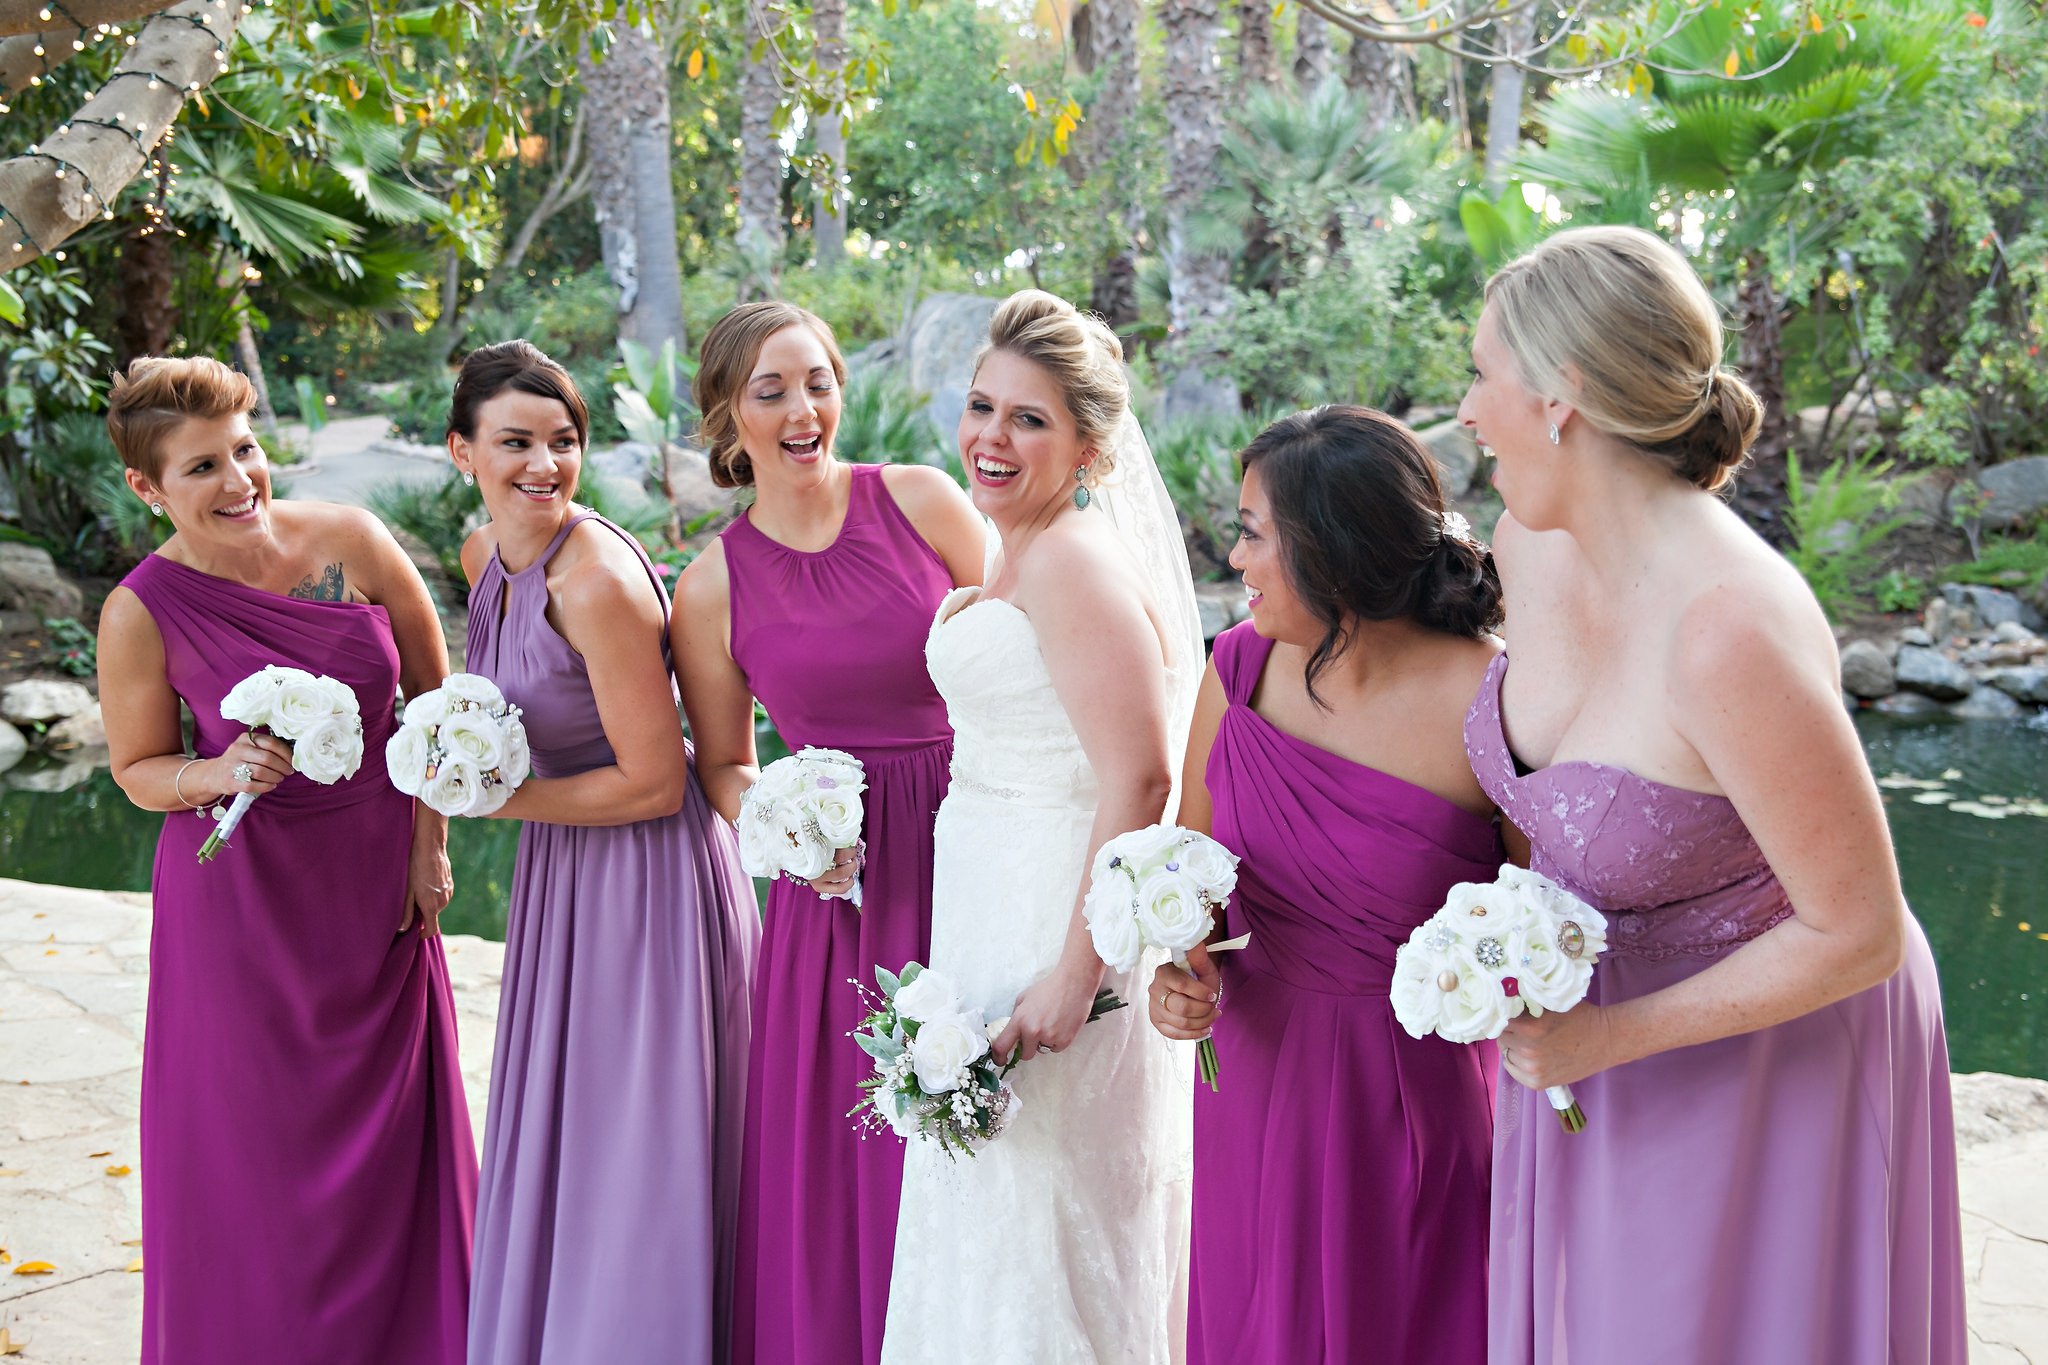 bridal party, wedding, bridesmaids, dresses